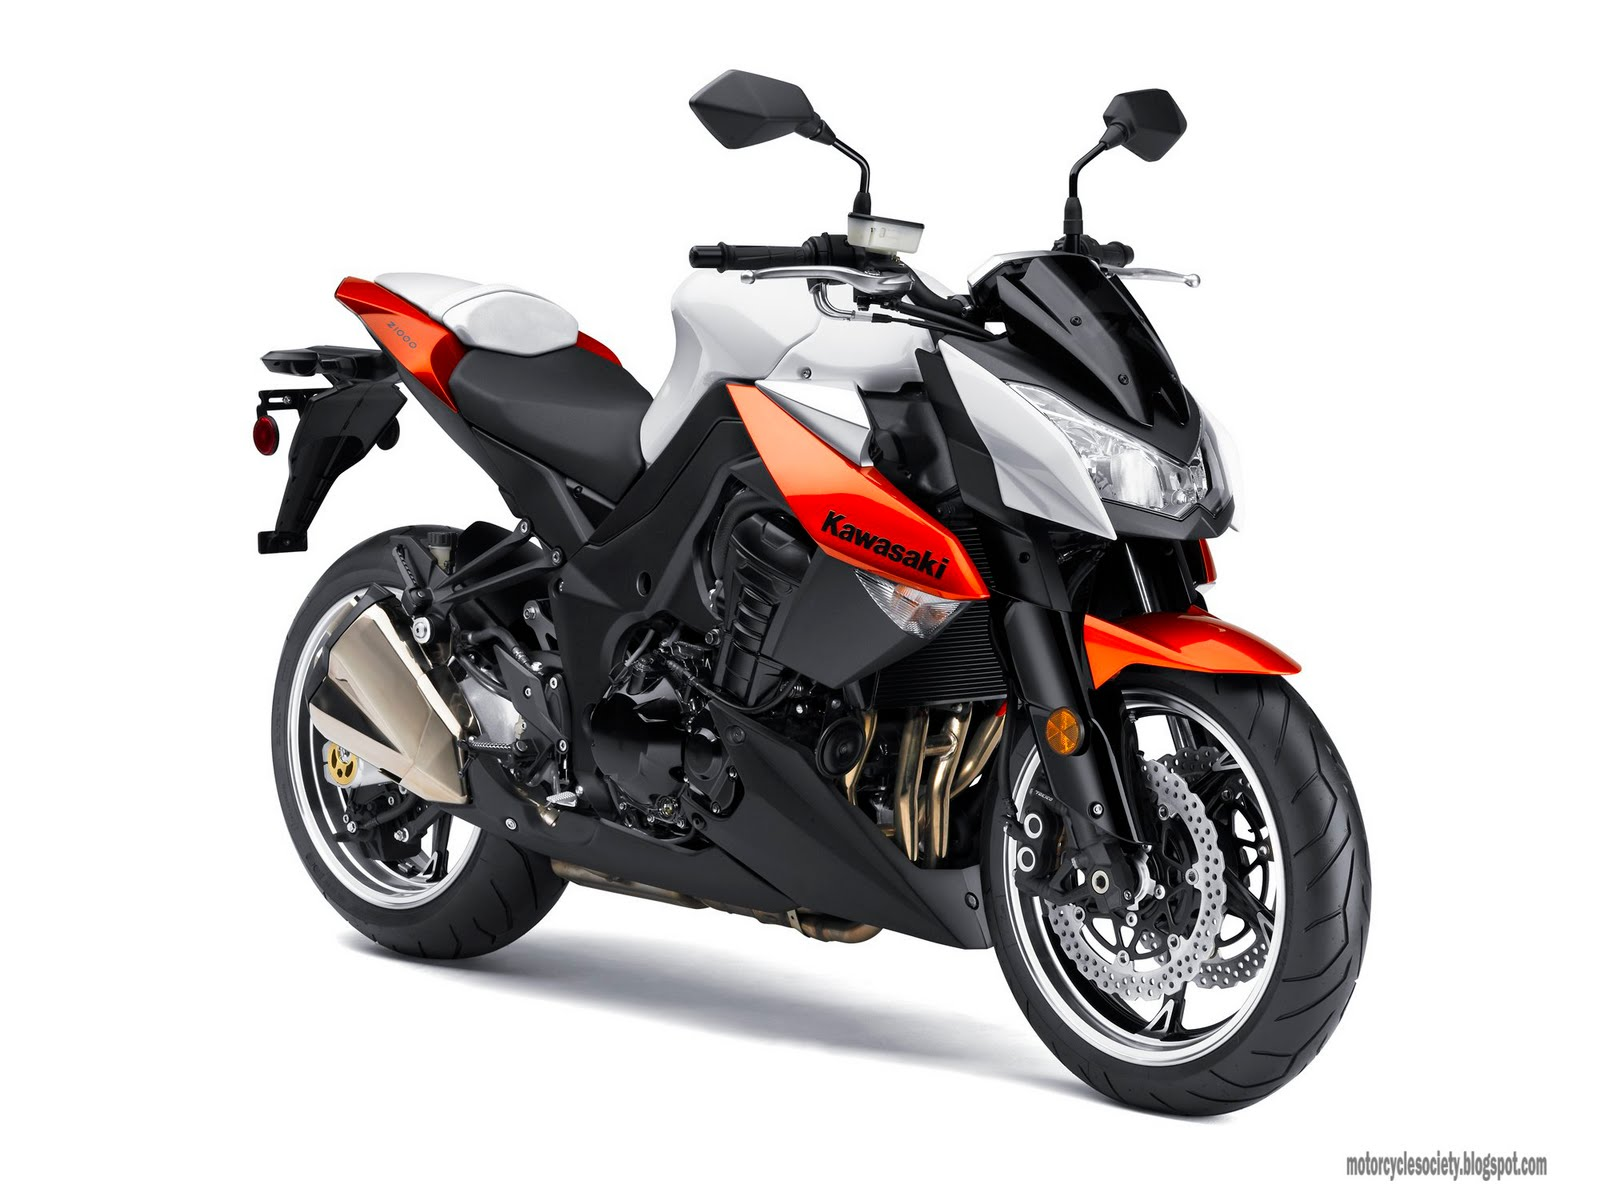 2010 Kawasaki Z1000br sportier than ever   Bikes